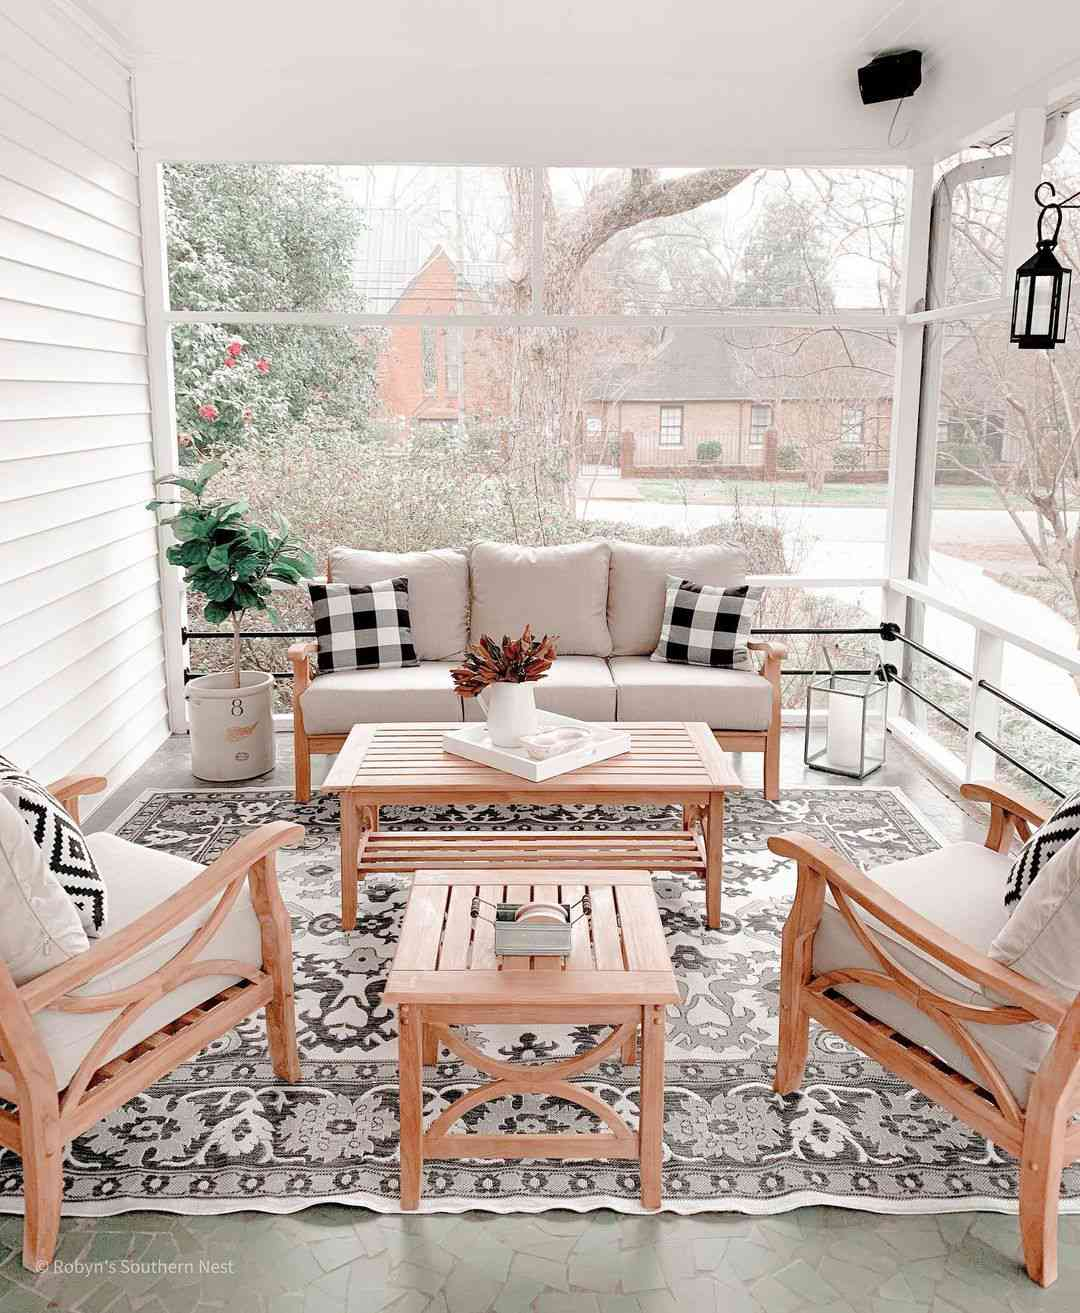 Screened in porch with furniture